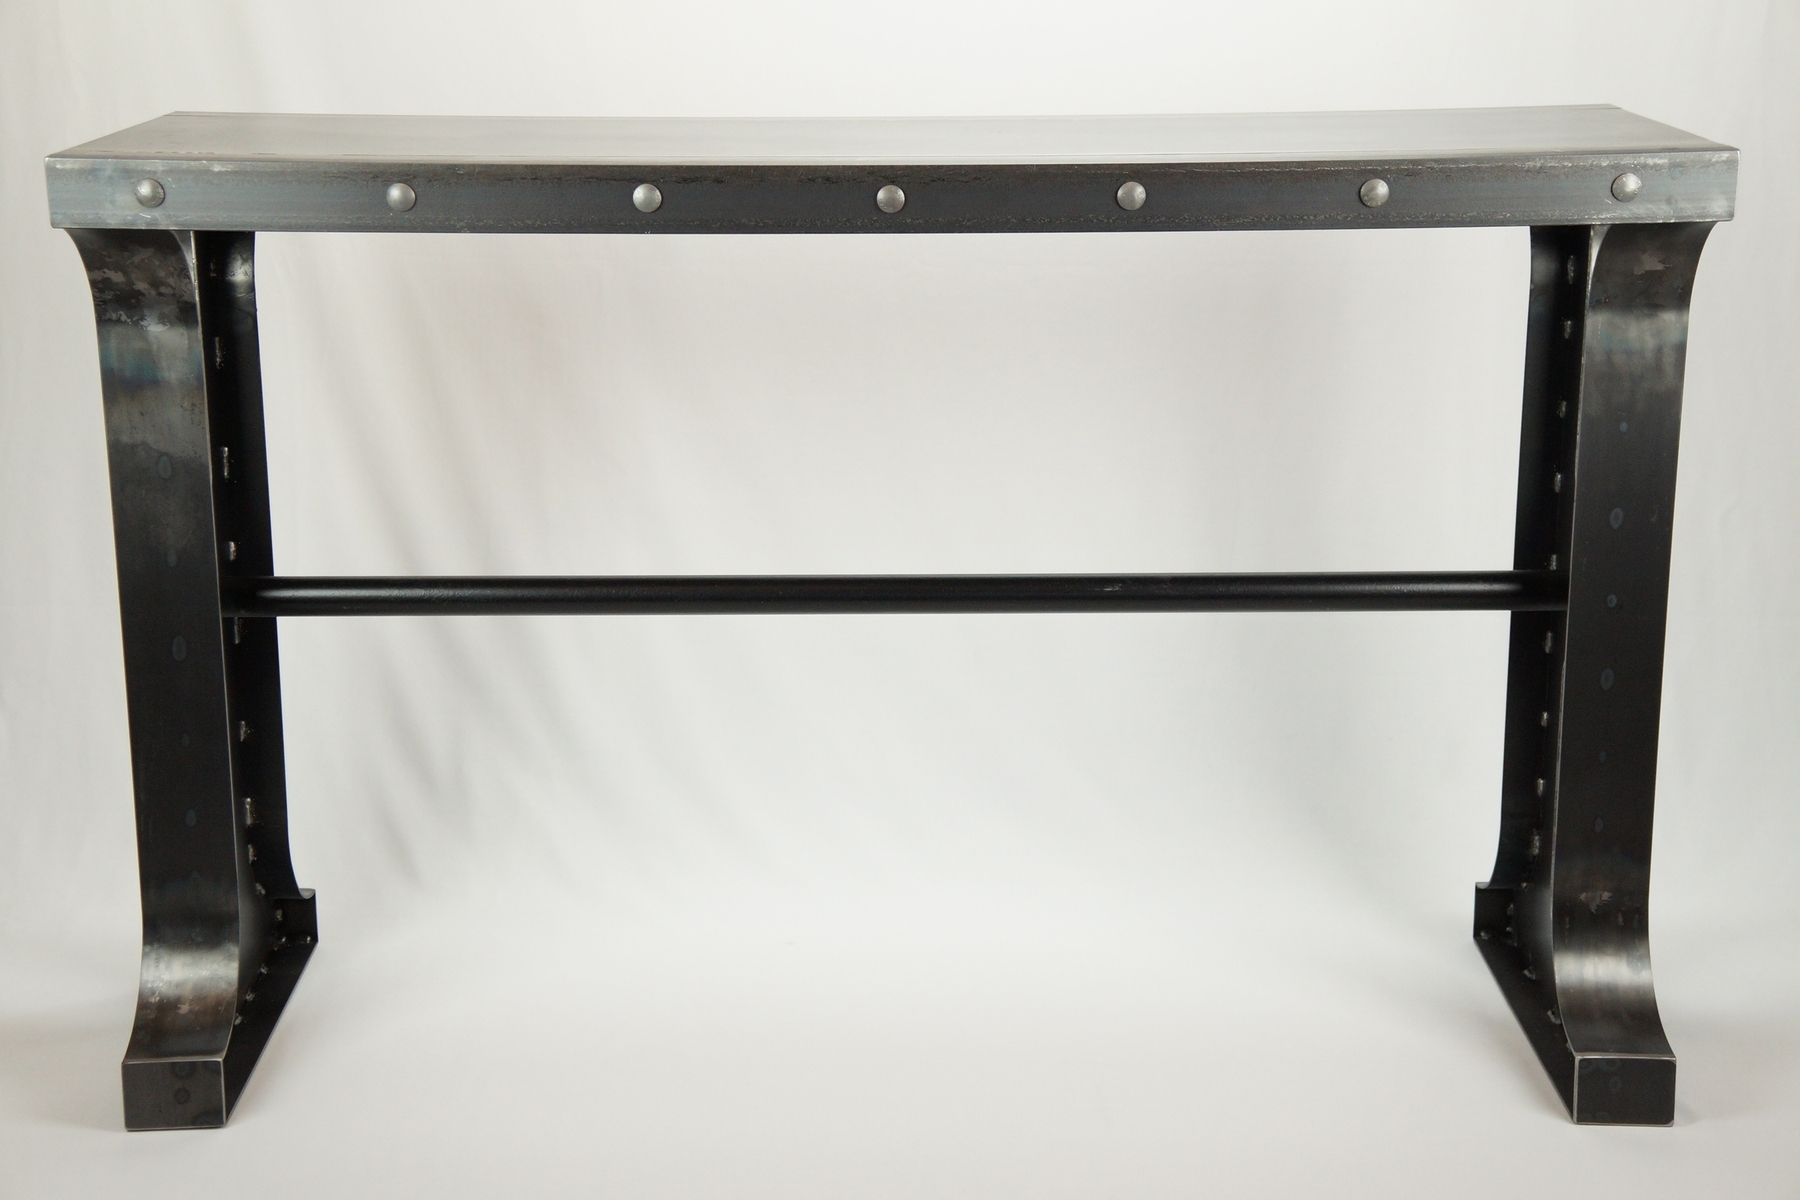 buy a custom made industrial metal console table made to order from ck metalcraft llc. Black Bedroom Furniture Sets. Home Design Ideas